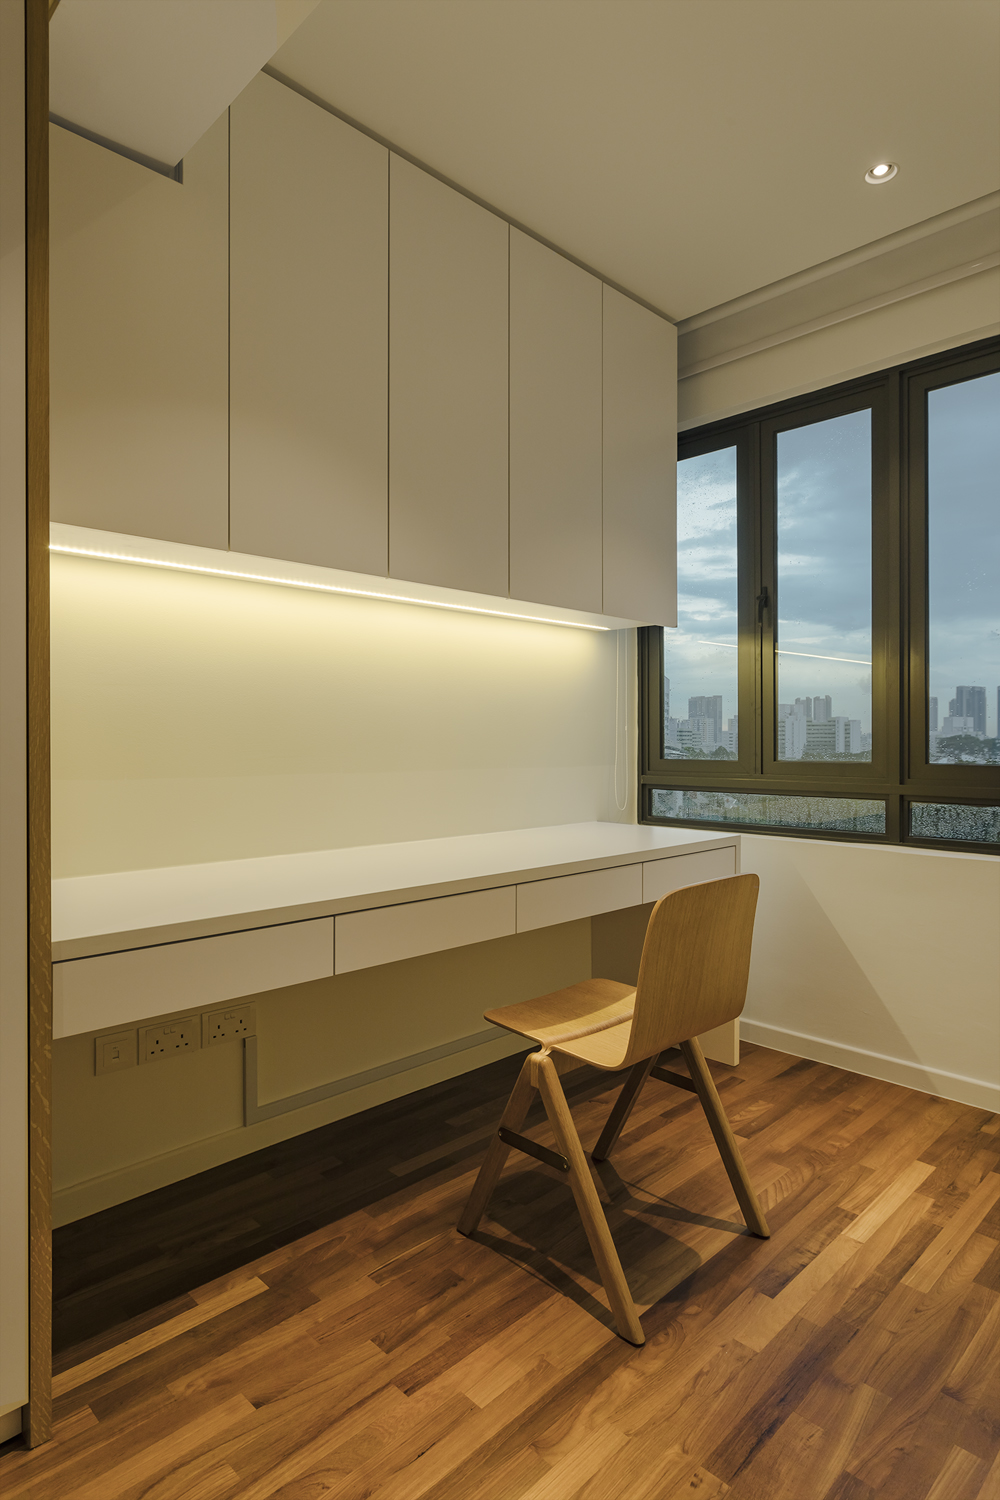 Study space in master bedroom Kitchen counter provides visual continuity to dining room at Pandan Valley Condominium